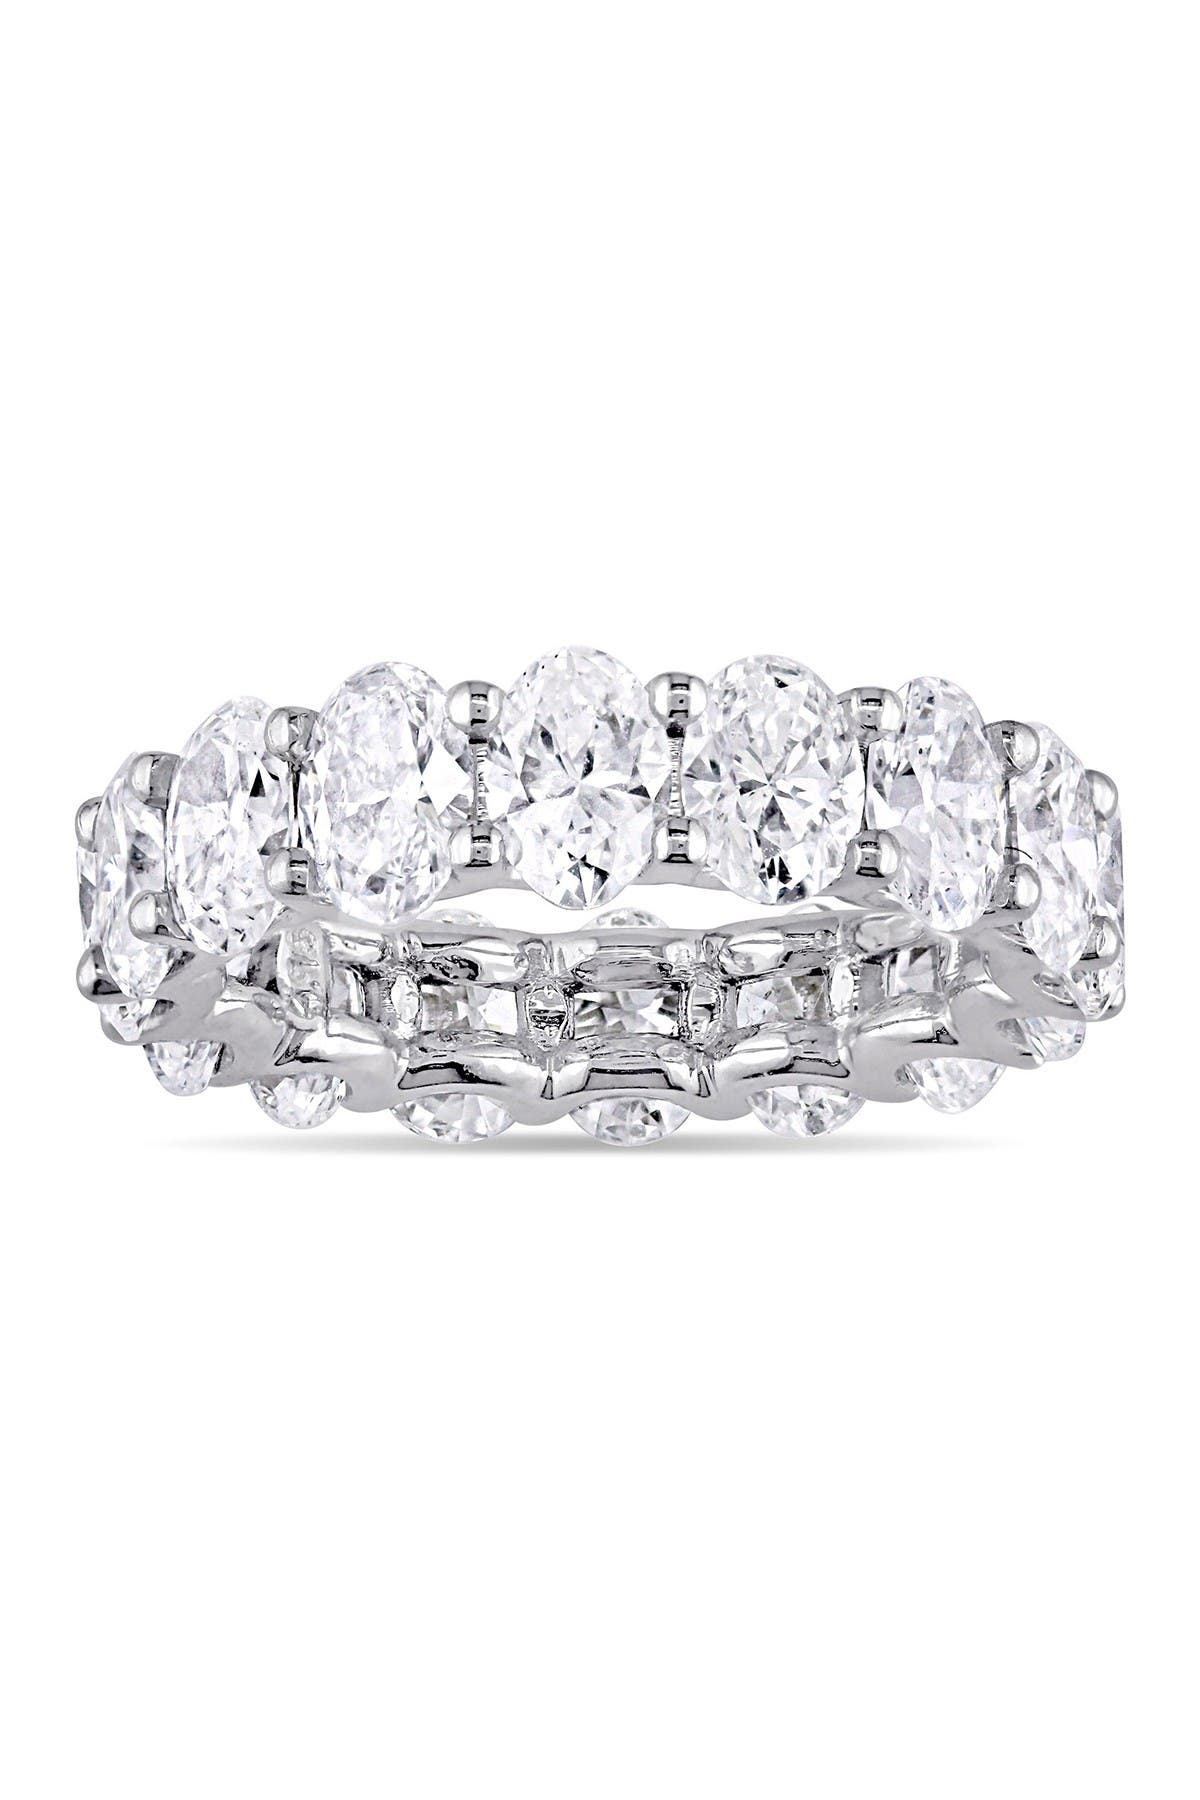 Image of Suzy Levian Sterling Silver Petite Oval-Cut CZ Eternity Band